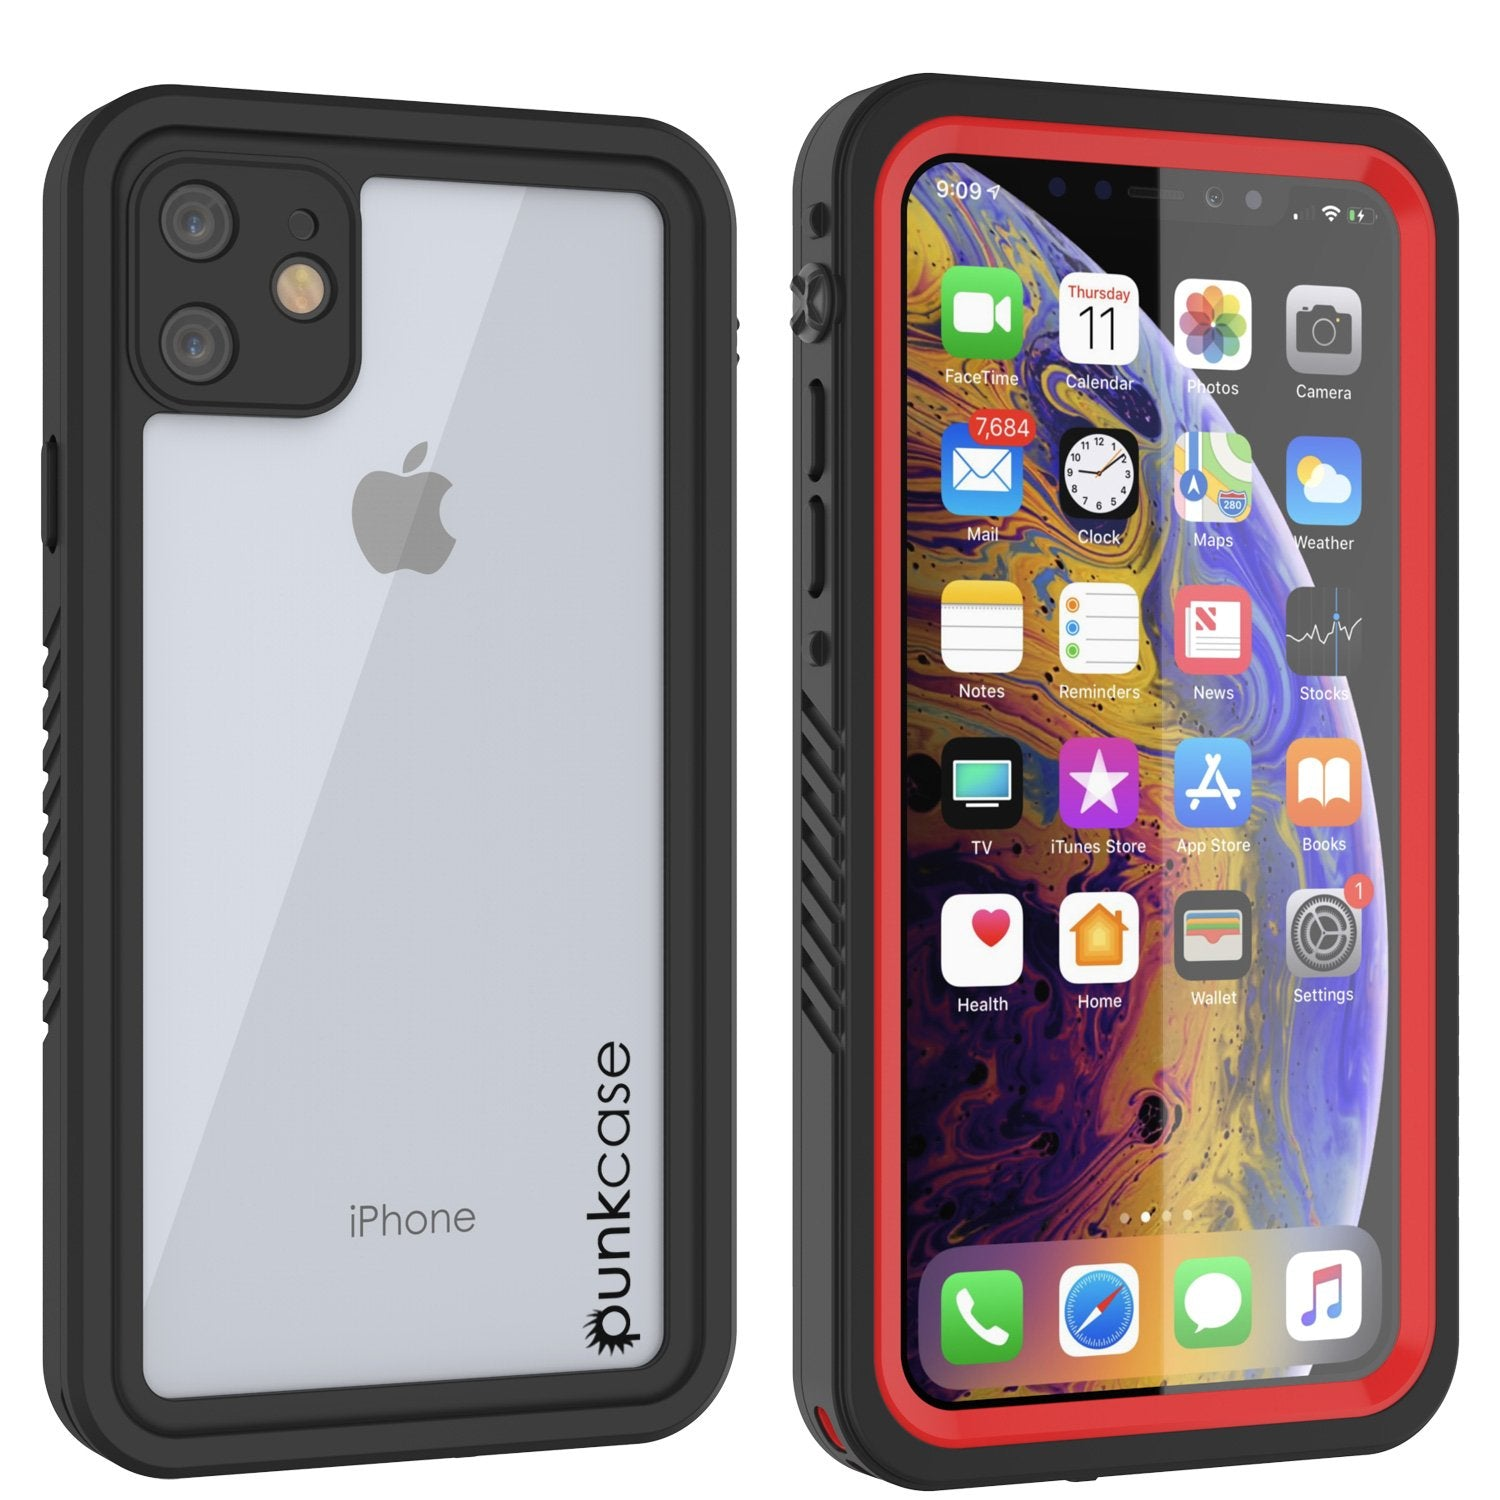 iPhone 11 Waterproof Case, Punkcase [Extreme Series] Armor Cover W/ Built In Screen Protector [Red]